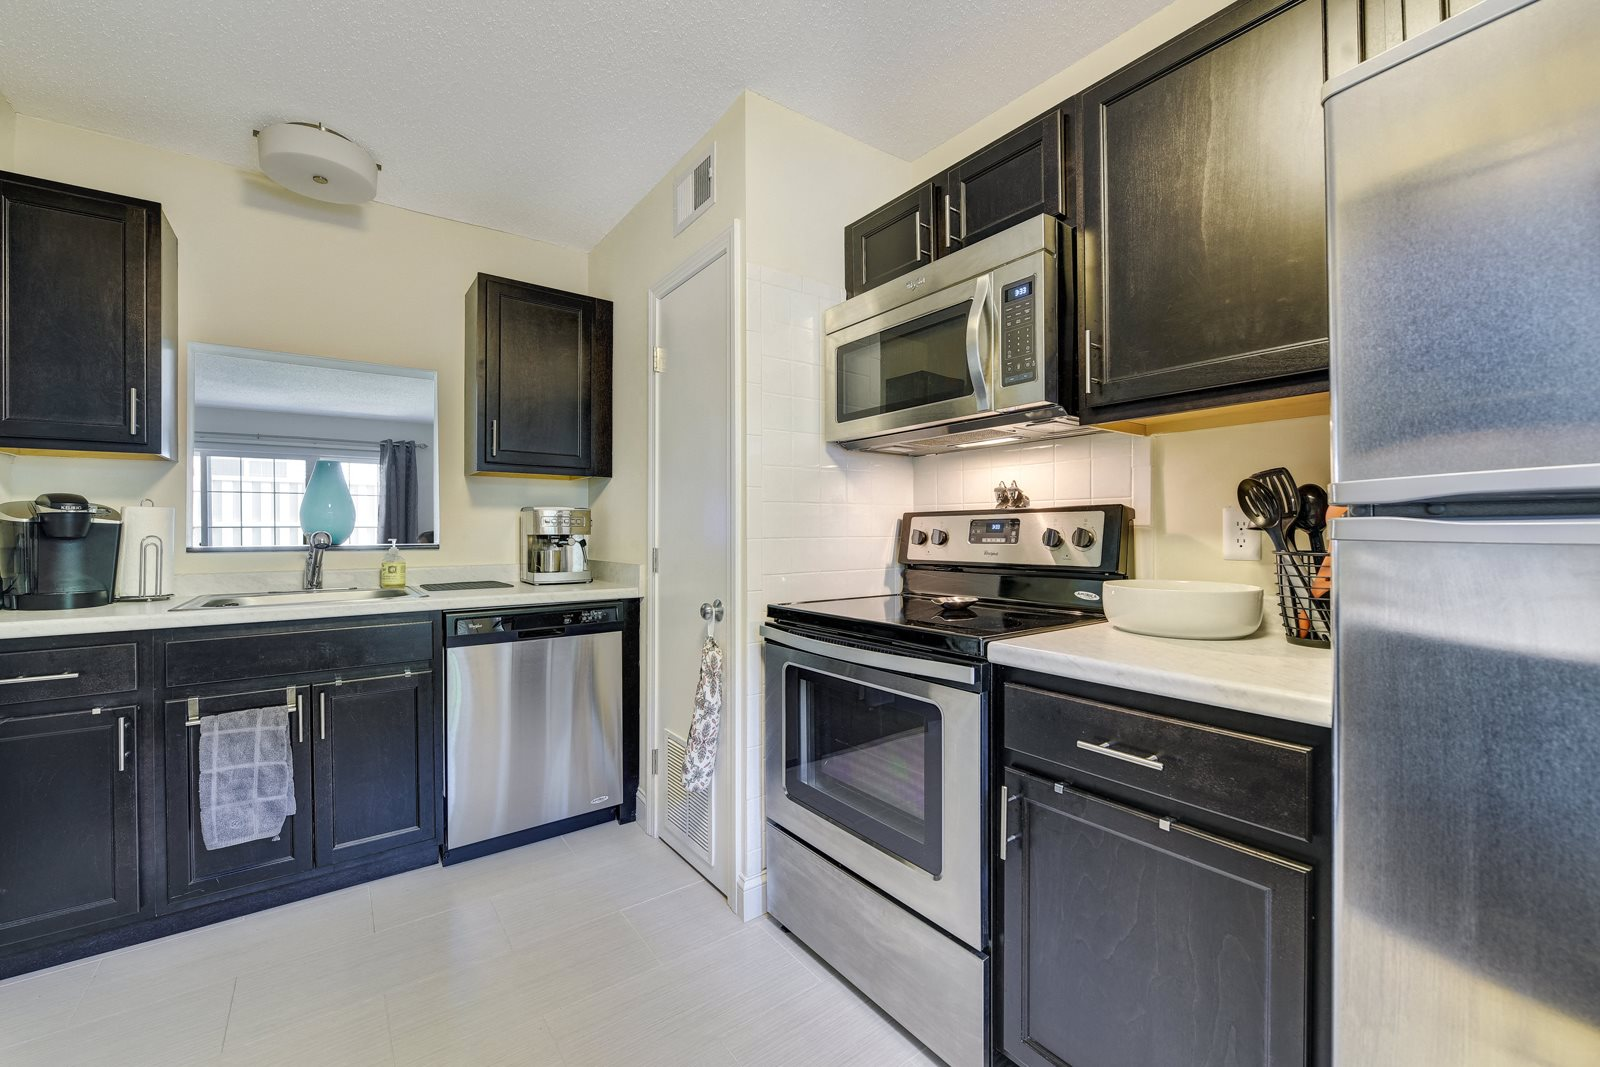 Renovated Kitchens with Stainless Steel Appliances at Windsor Ridge at Westborough, 1 Windsor Ridge Drive, MA